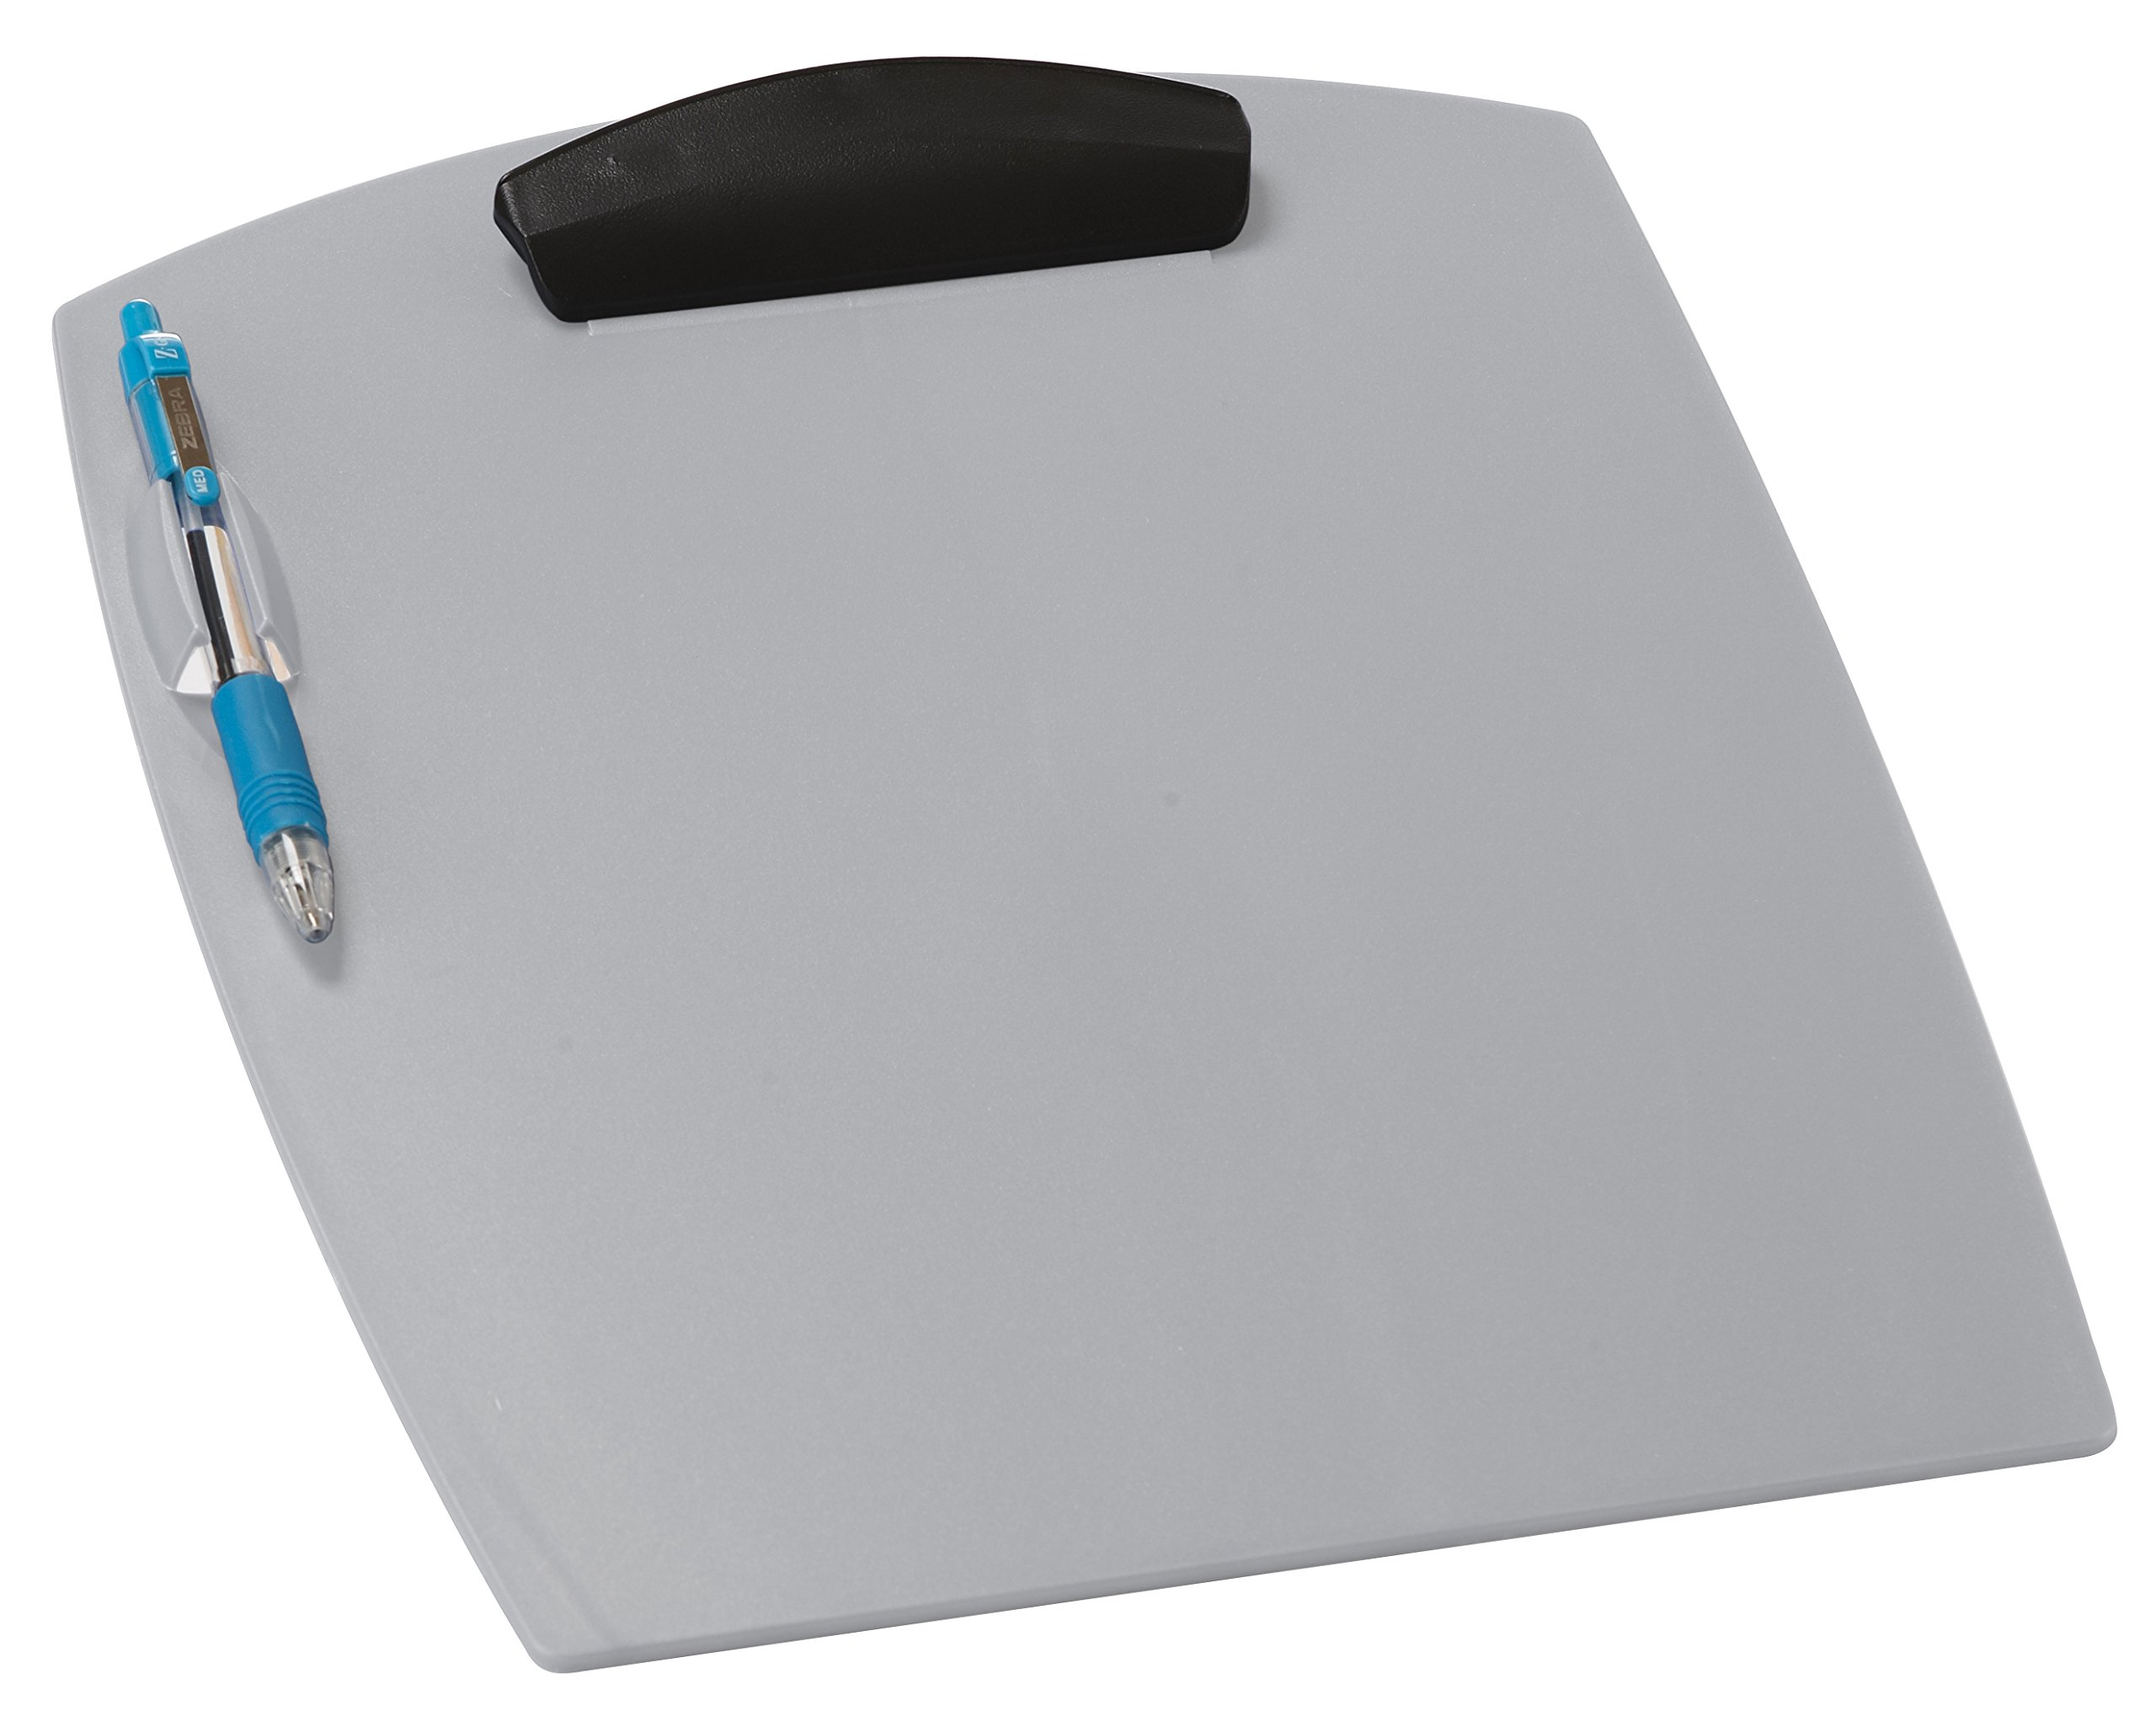 Storex Deluxe Clipboard, 10.25 x .88 x 12.74 Inches, Pearl Silver, Case of 12, STX41103U12C by Storex (Image #1)